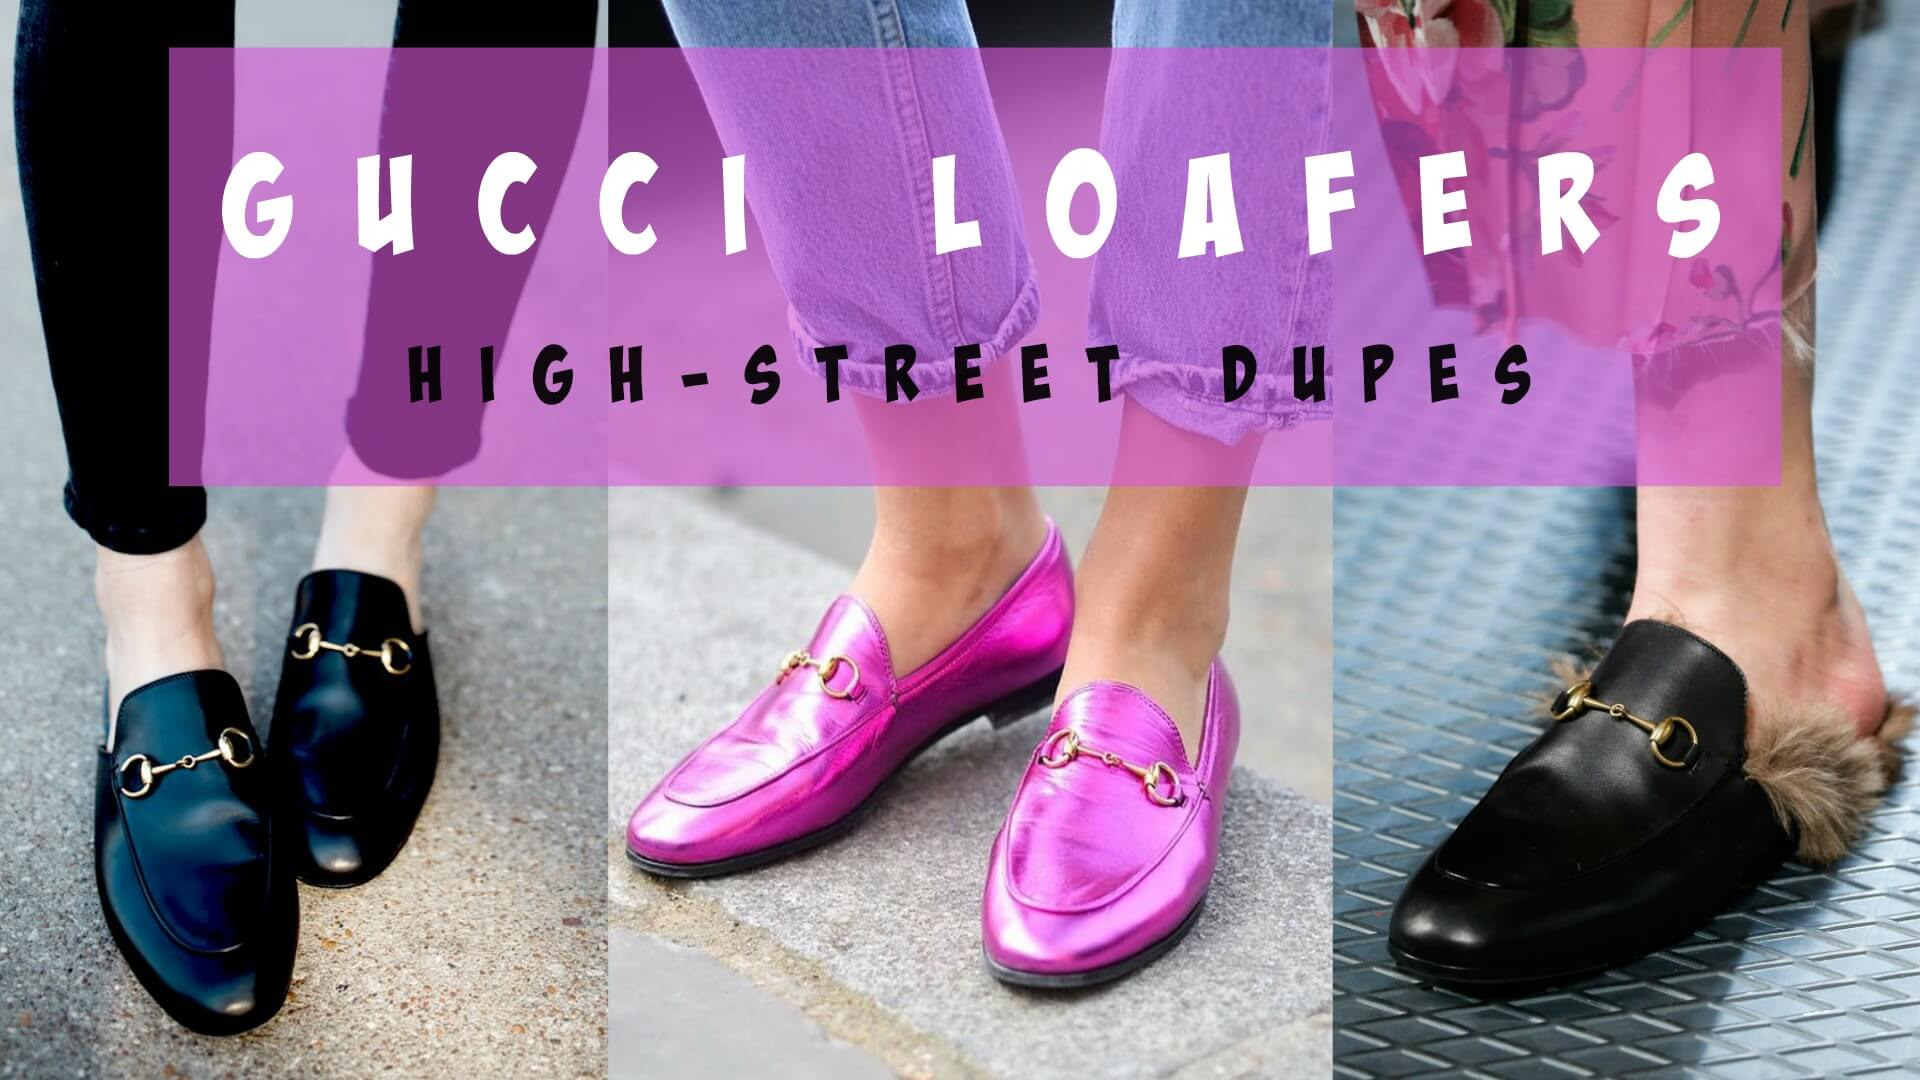 GUCCI LOAFERS HIGH STREET DUPES